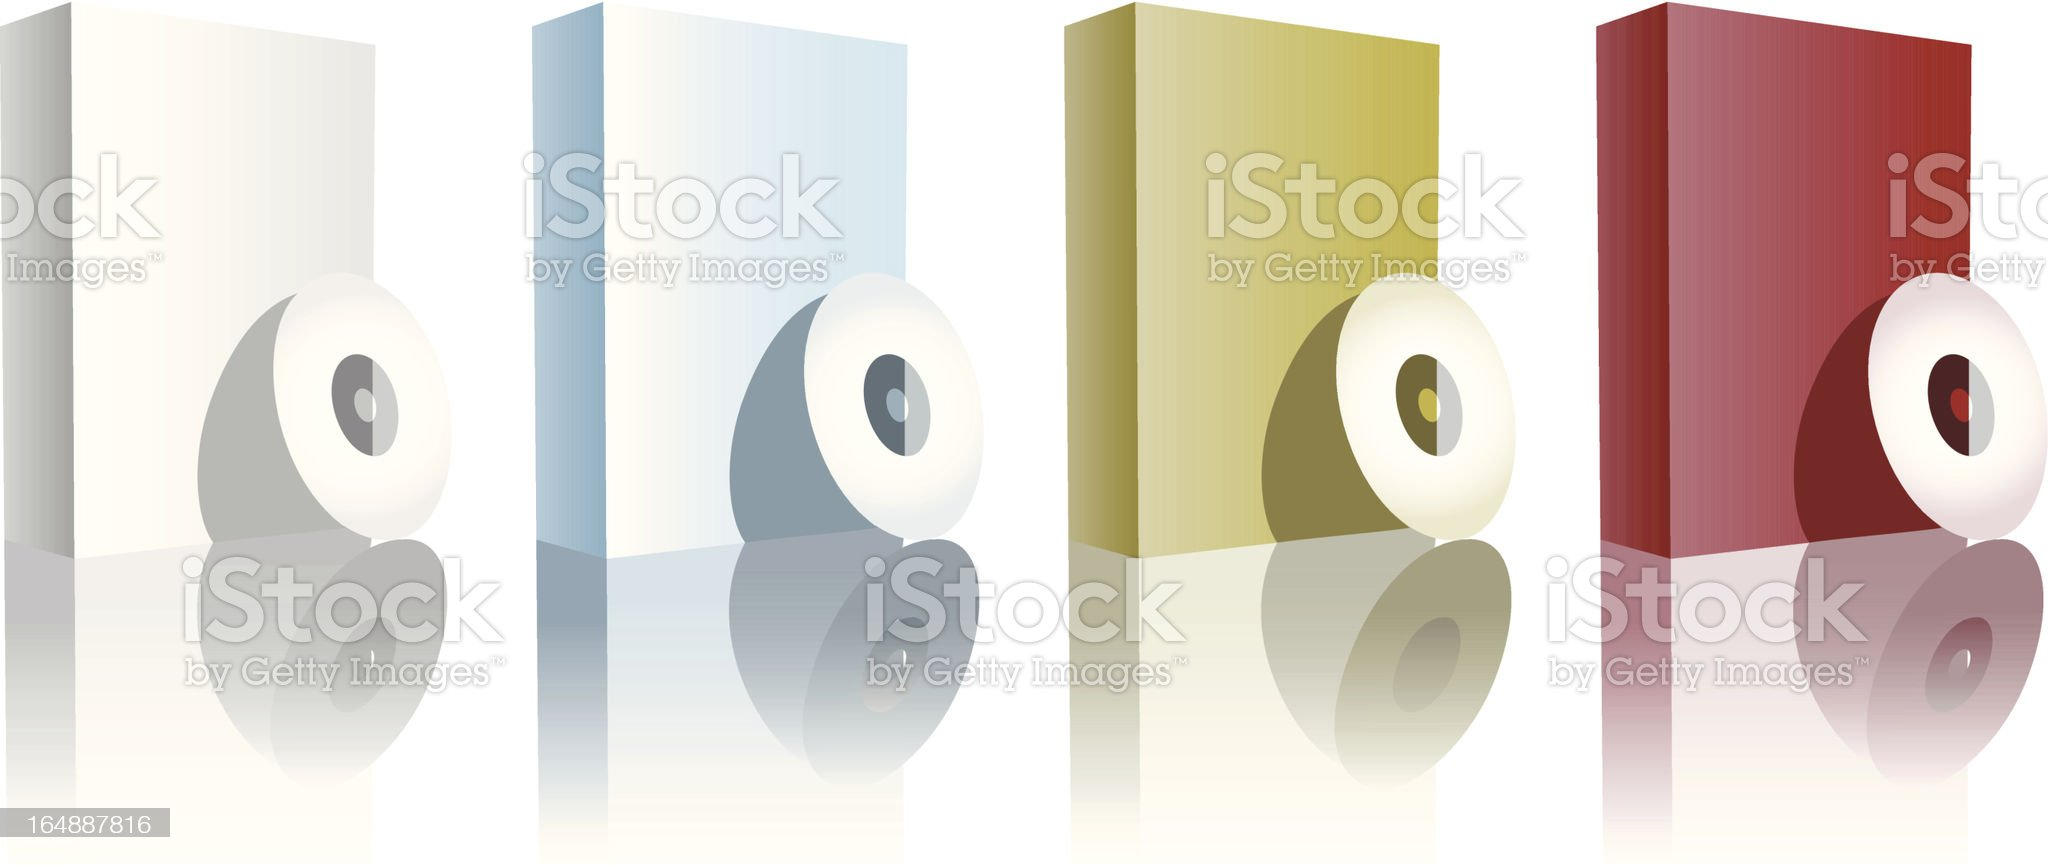 Software boxes royalty-free stock vector art